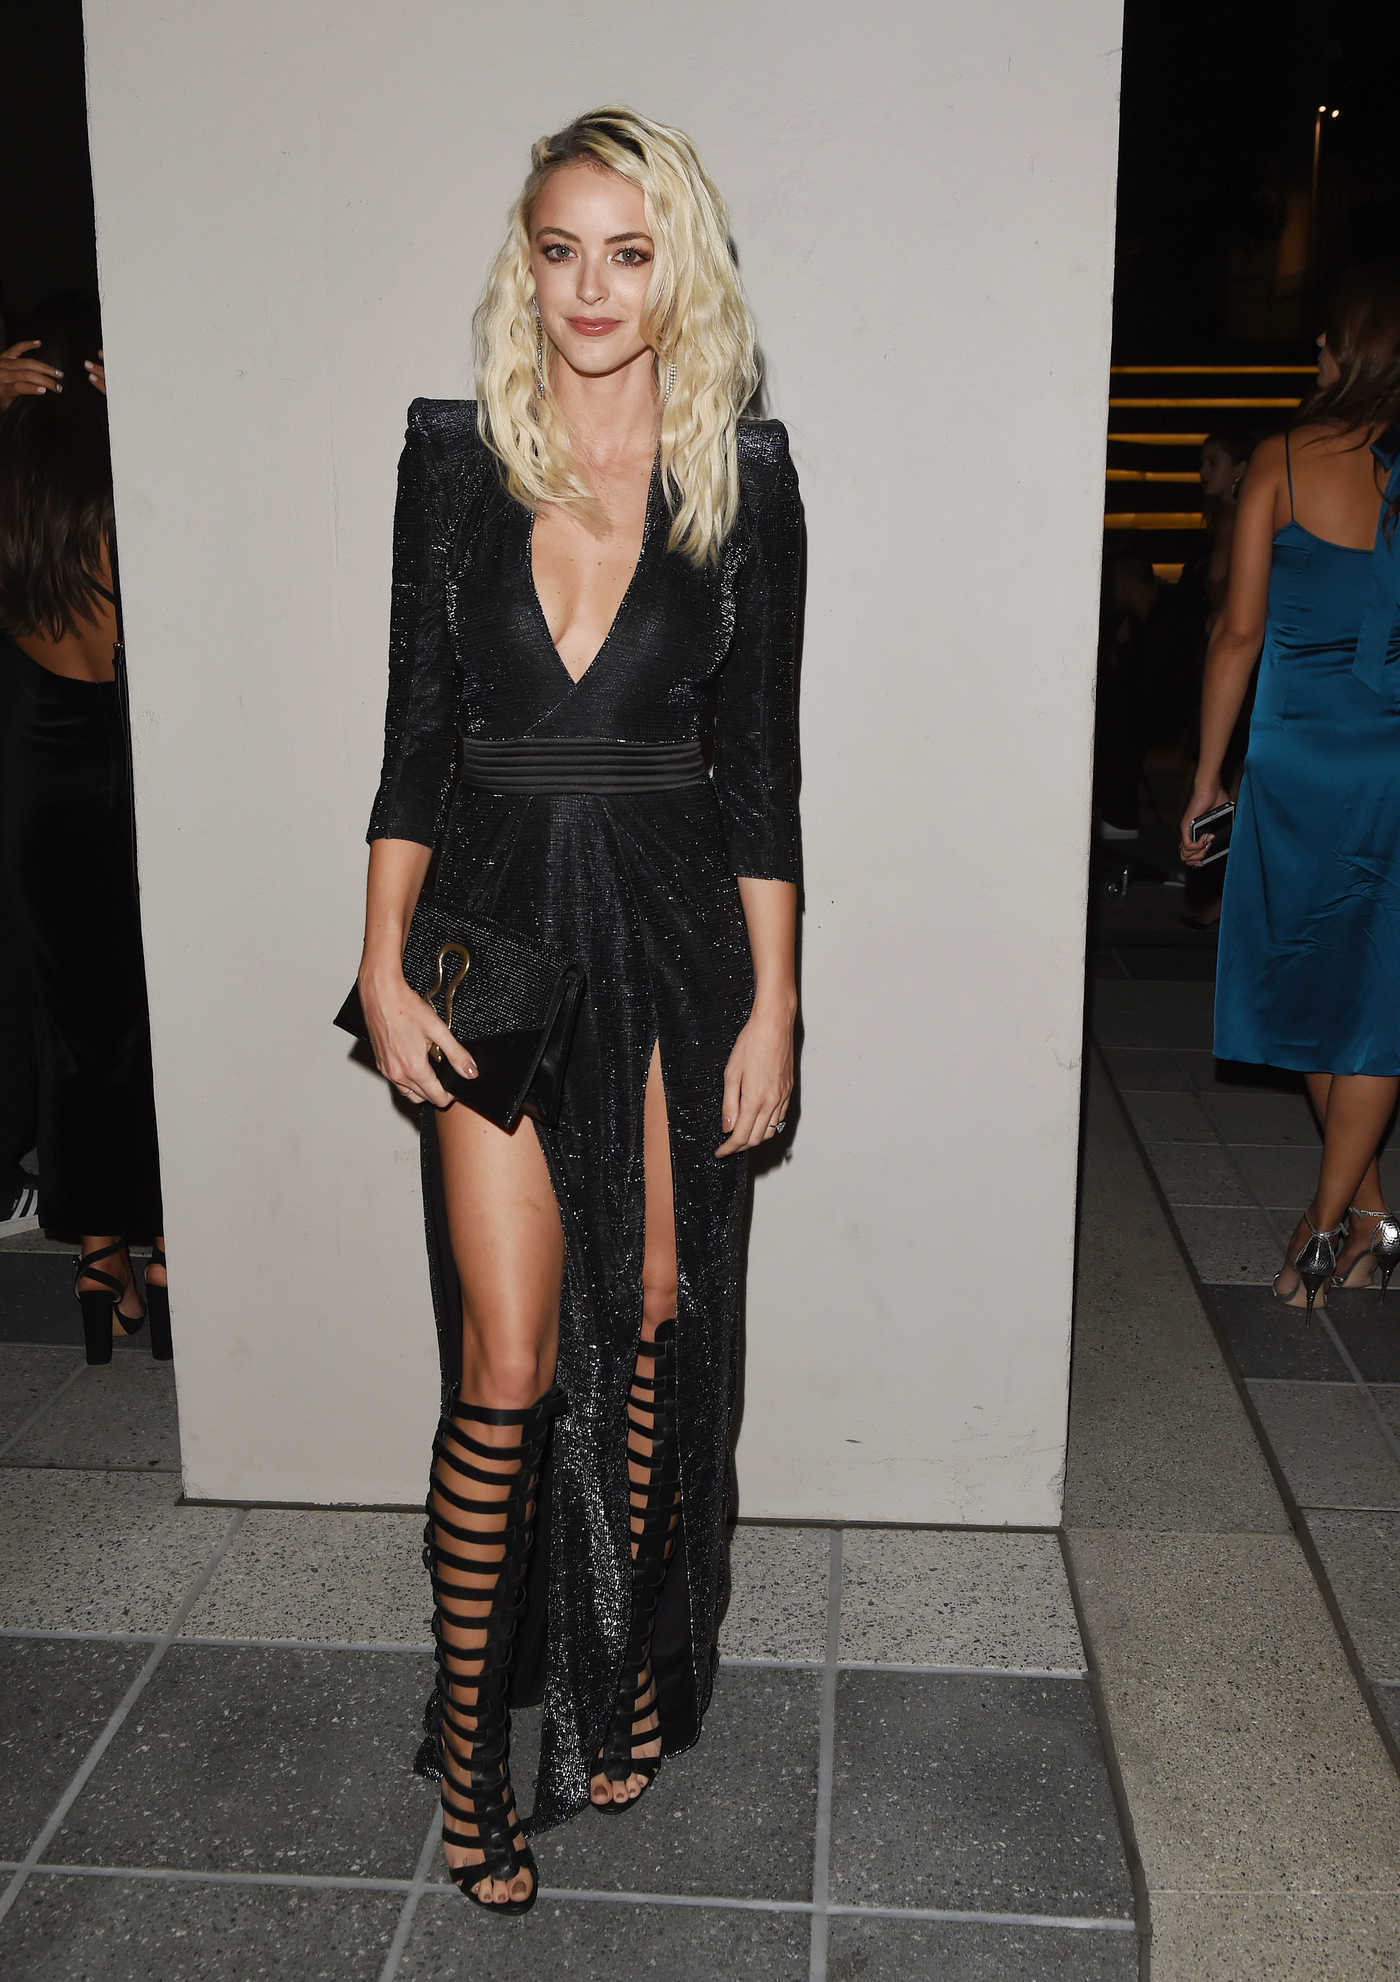 Kaitlynn Carter at the Revolve Winter Formal Event at NeueHouse in Los Angeles 11/10/2016